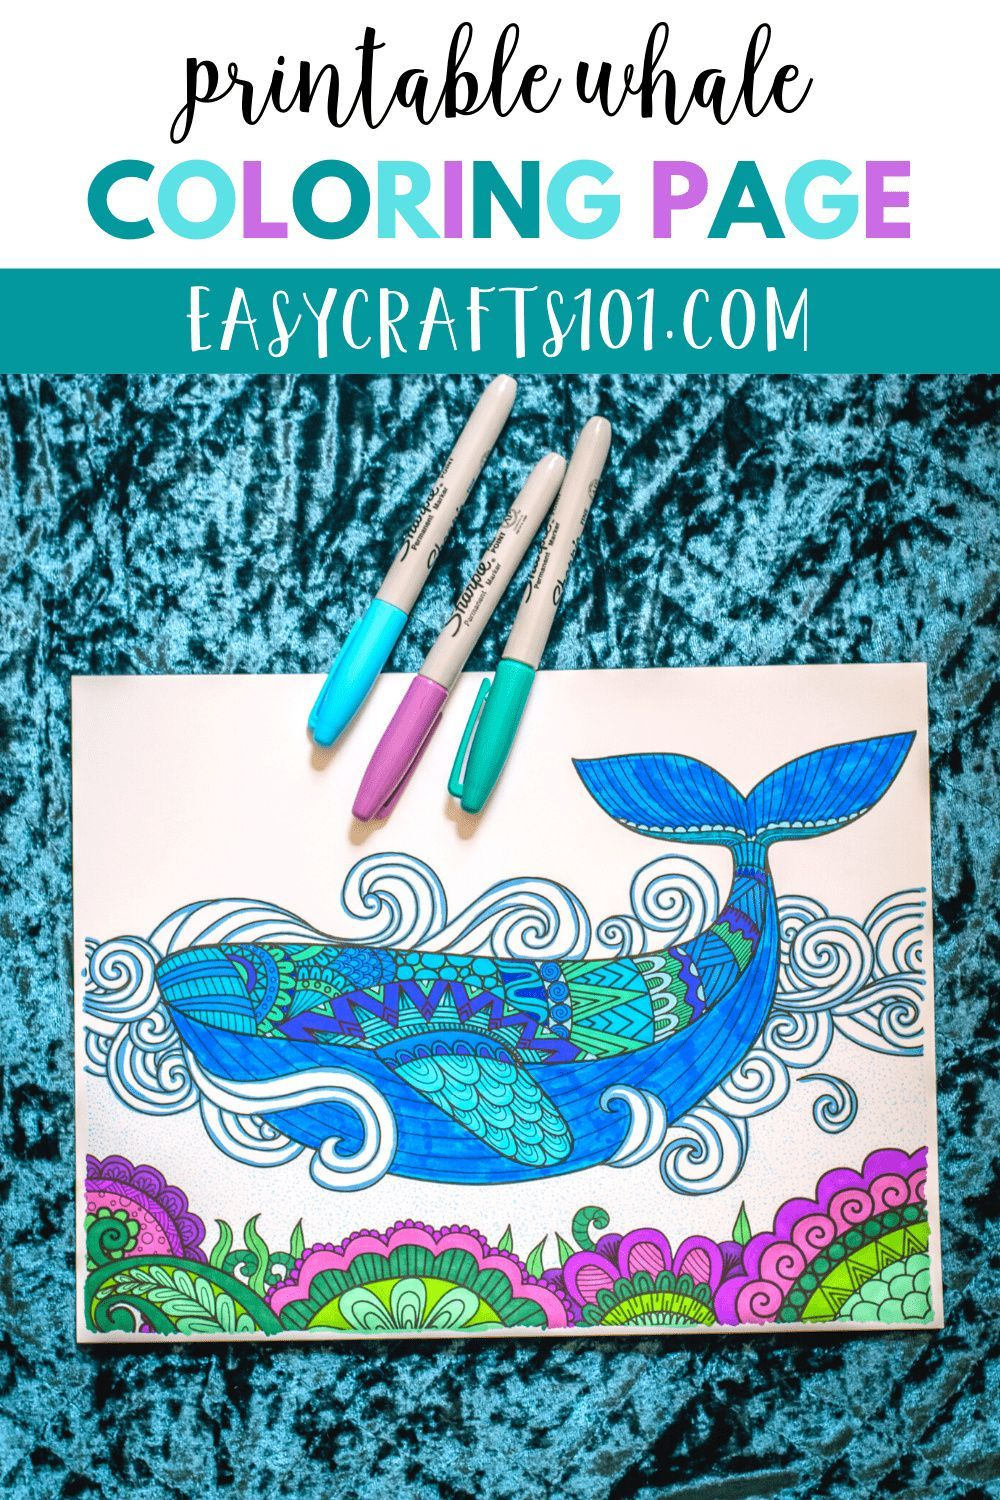 Printable Whale Coloring Page - Easy Crafts 101 in 2020 ...